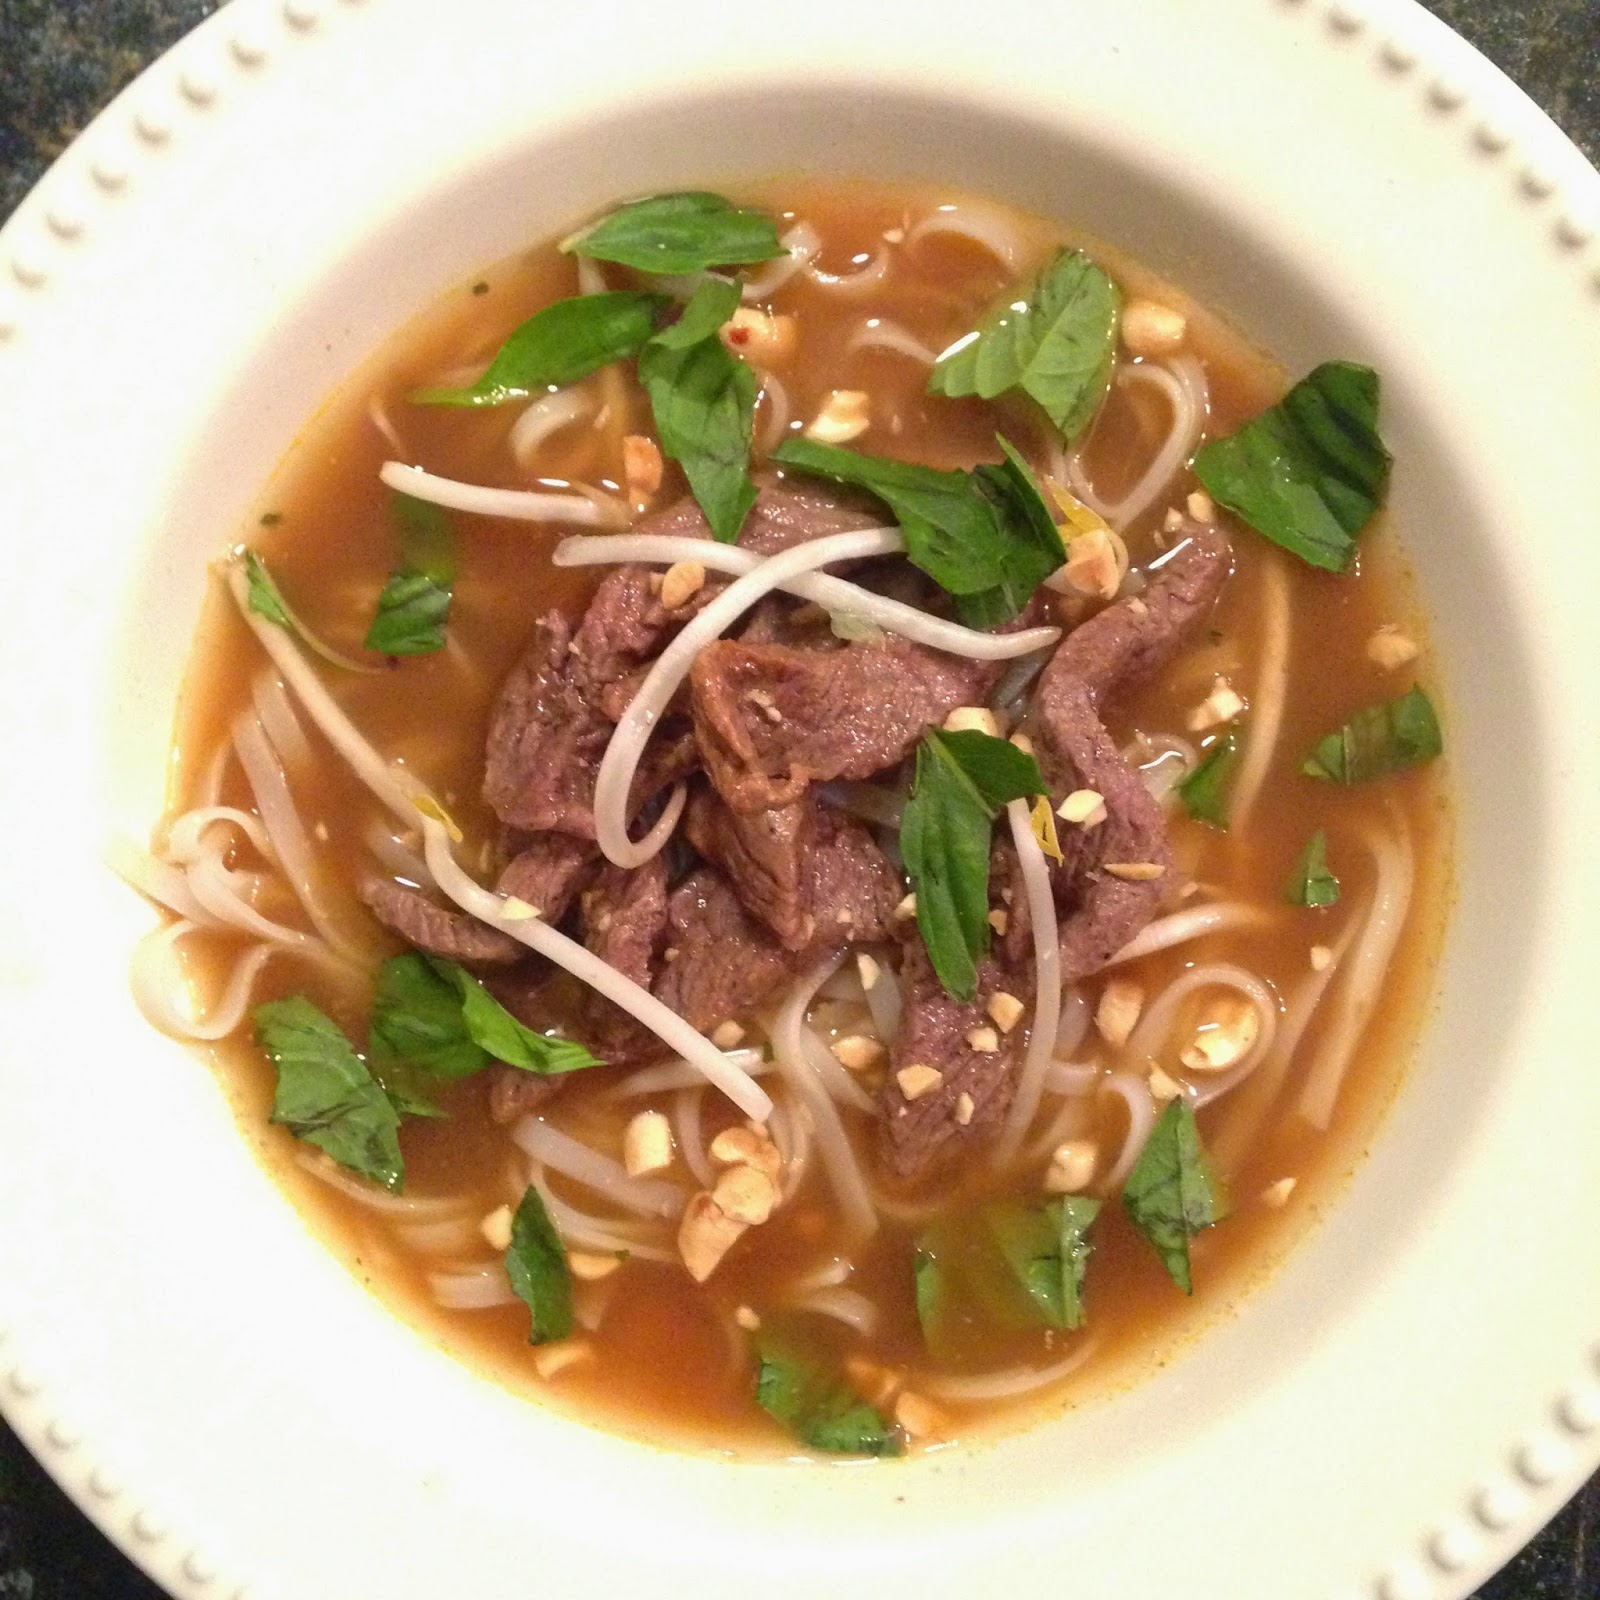 Blue apron vs plated - Beef Pho